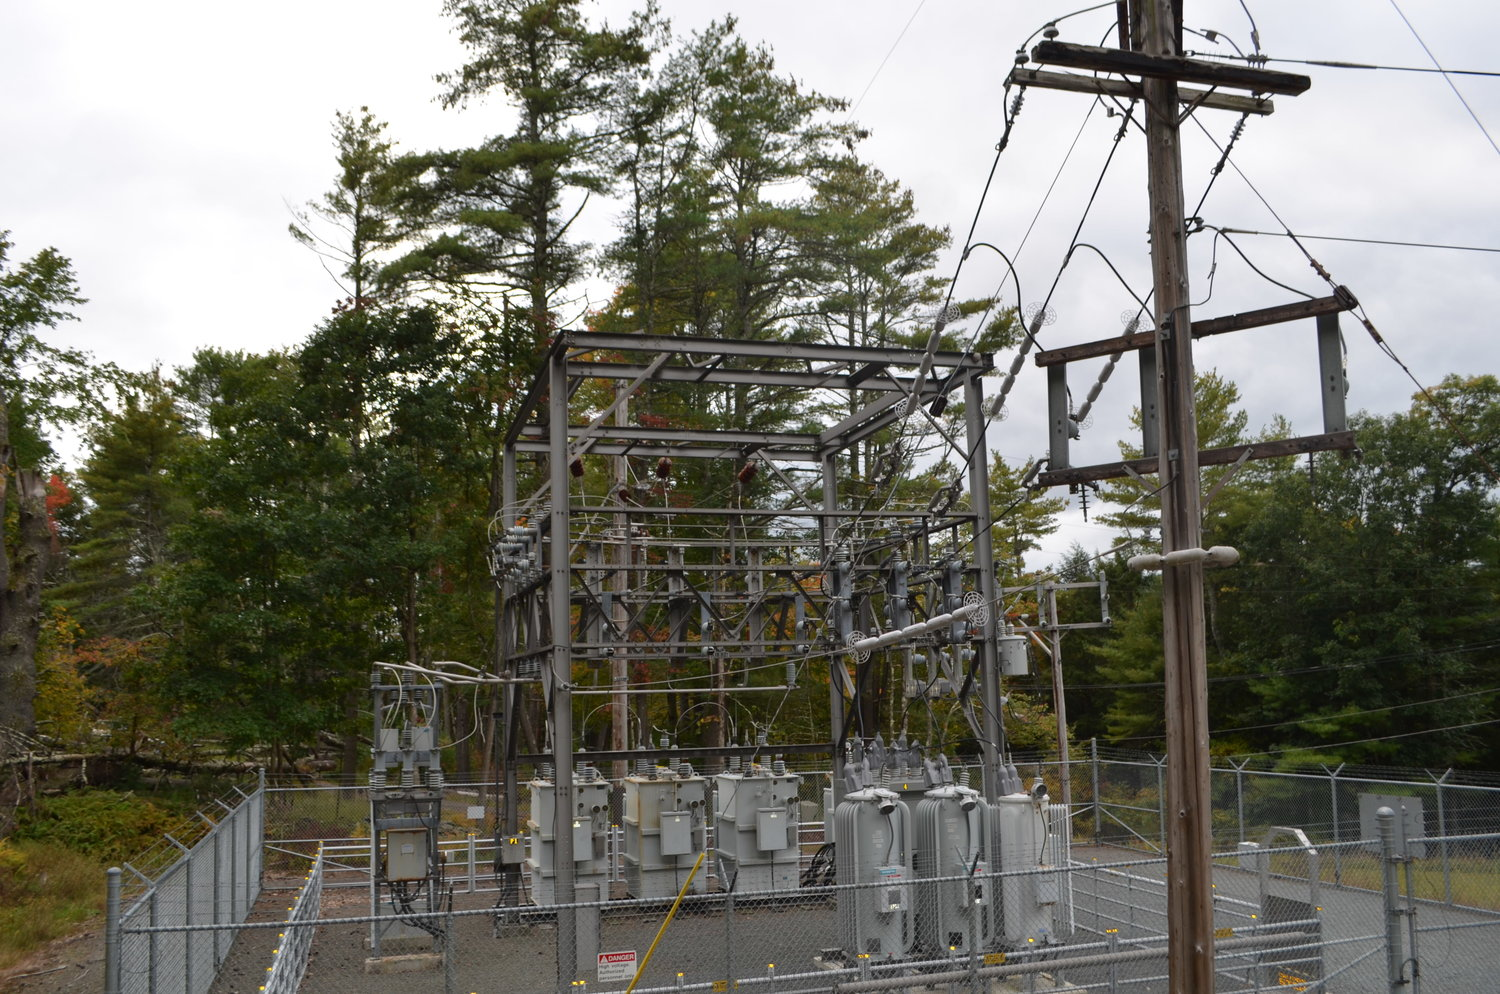 The Yulan substation is one of the oldest substations on line. Power from this station is often interrupted in most storms.